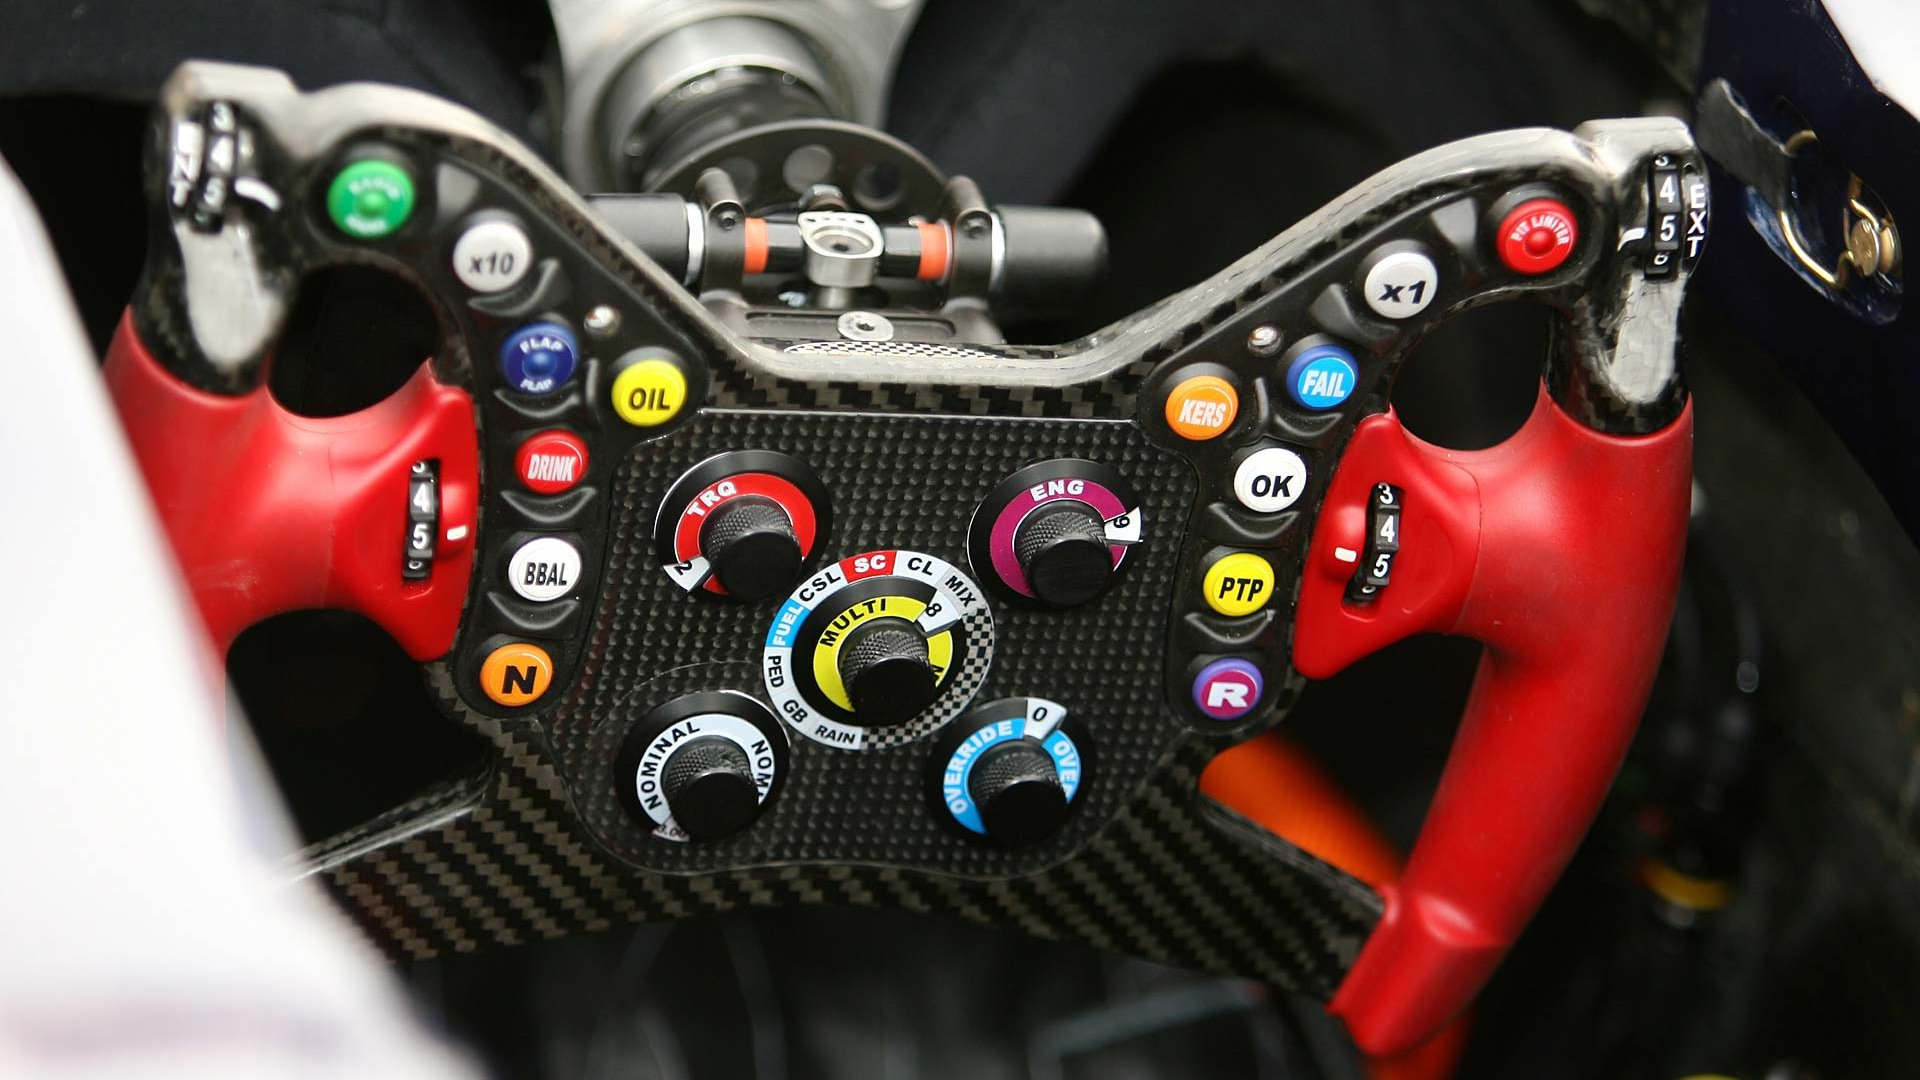 formula one vehicles buttons car interiors steering wheel. Black Bedroom Furniture Sets. Home Design Ideas